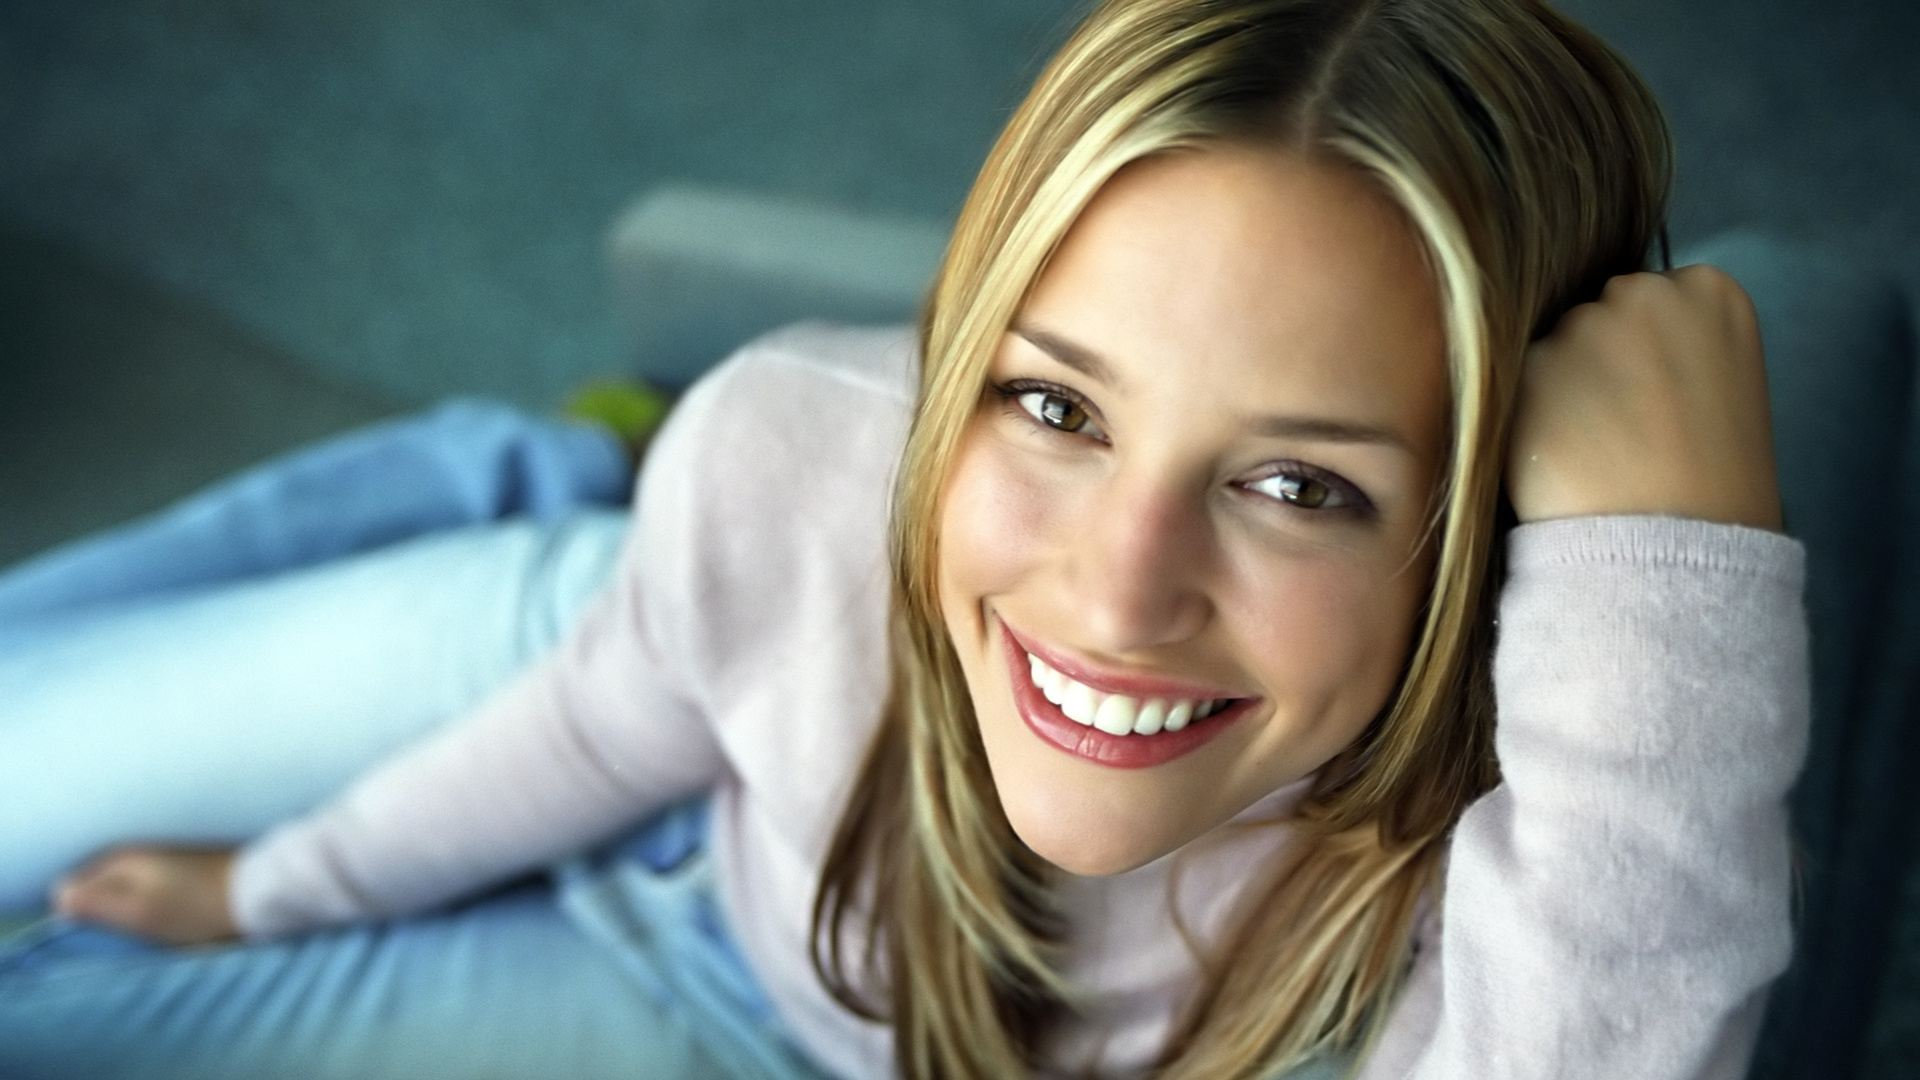 Actress piper perabo pictures